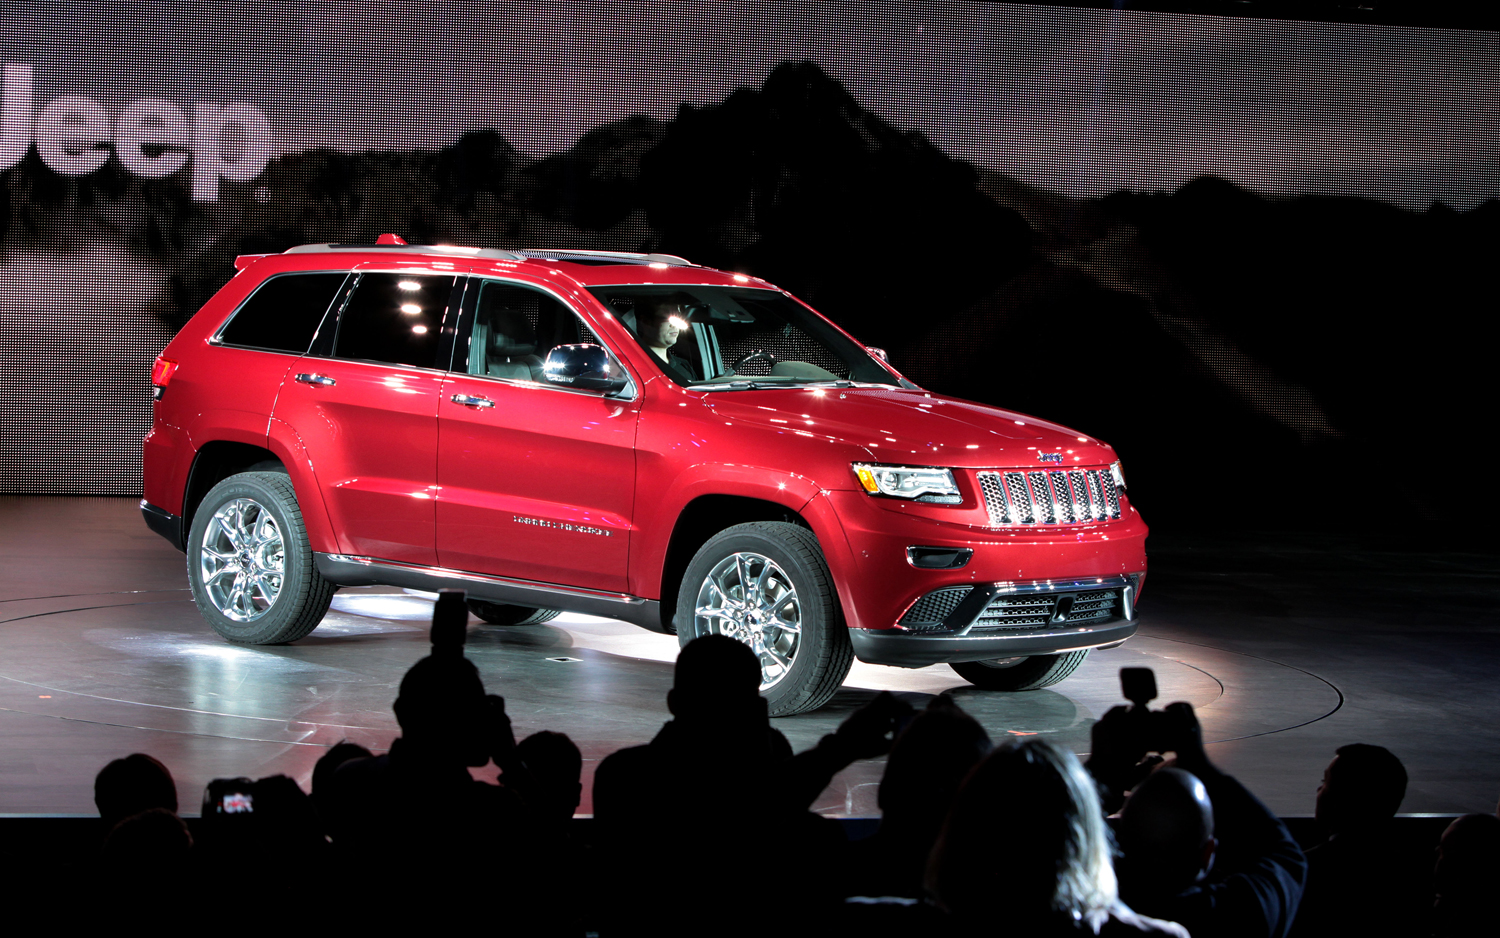 2014 jeep grand cherokee 2014 jeep grand cherokee front view the big. Cars Review. Best American Auto & Cars Review